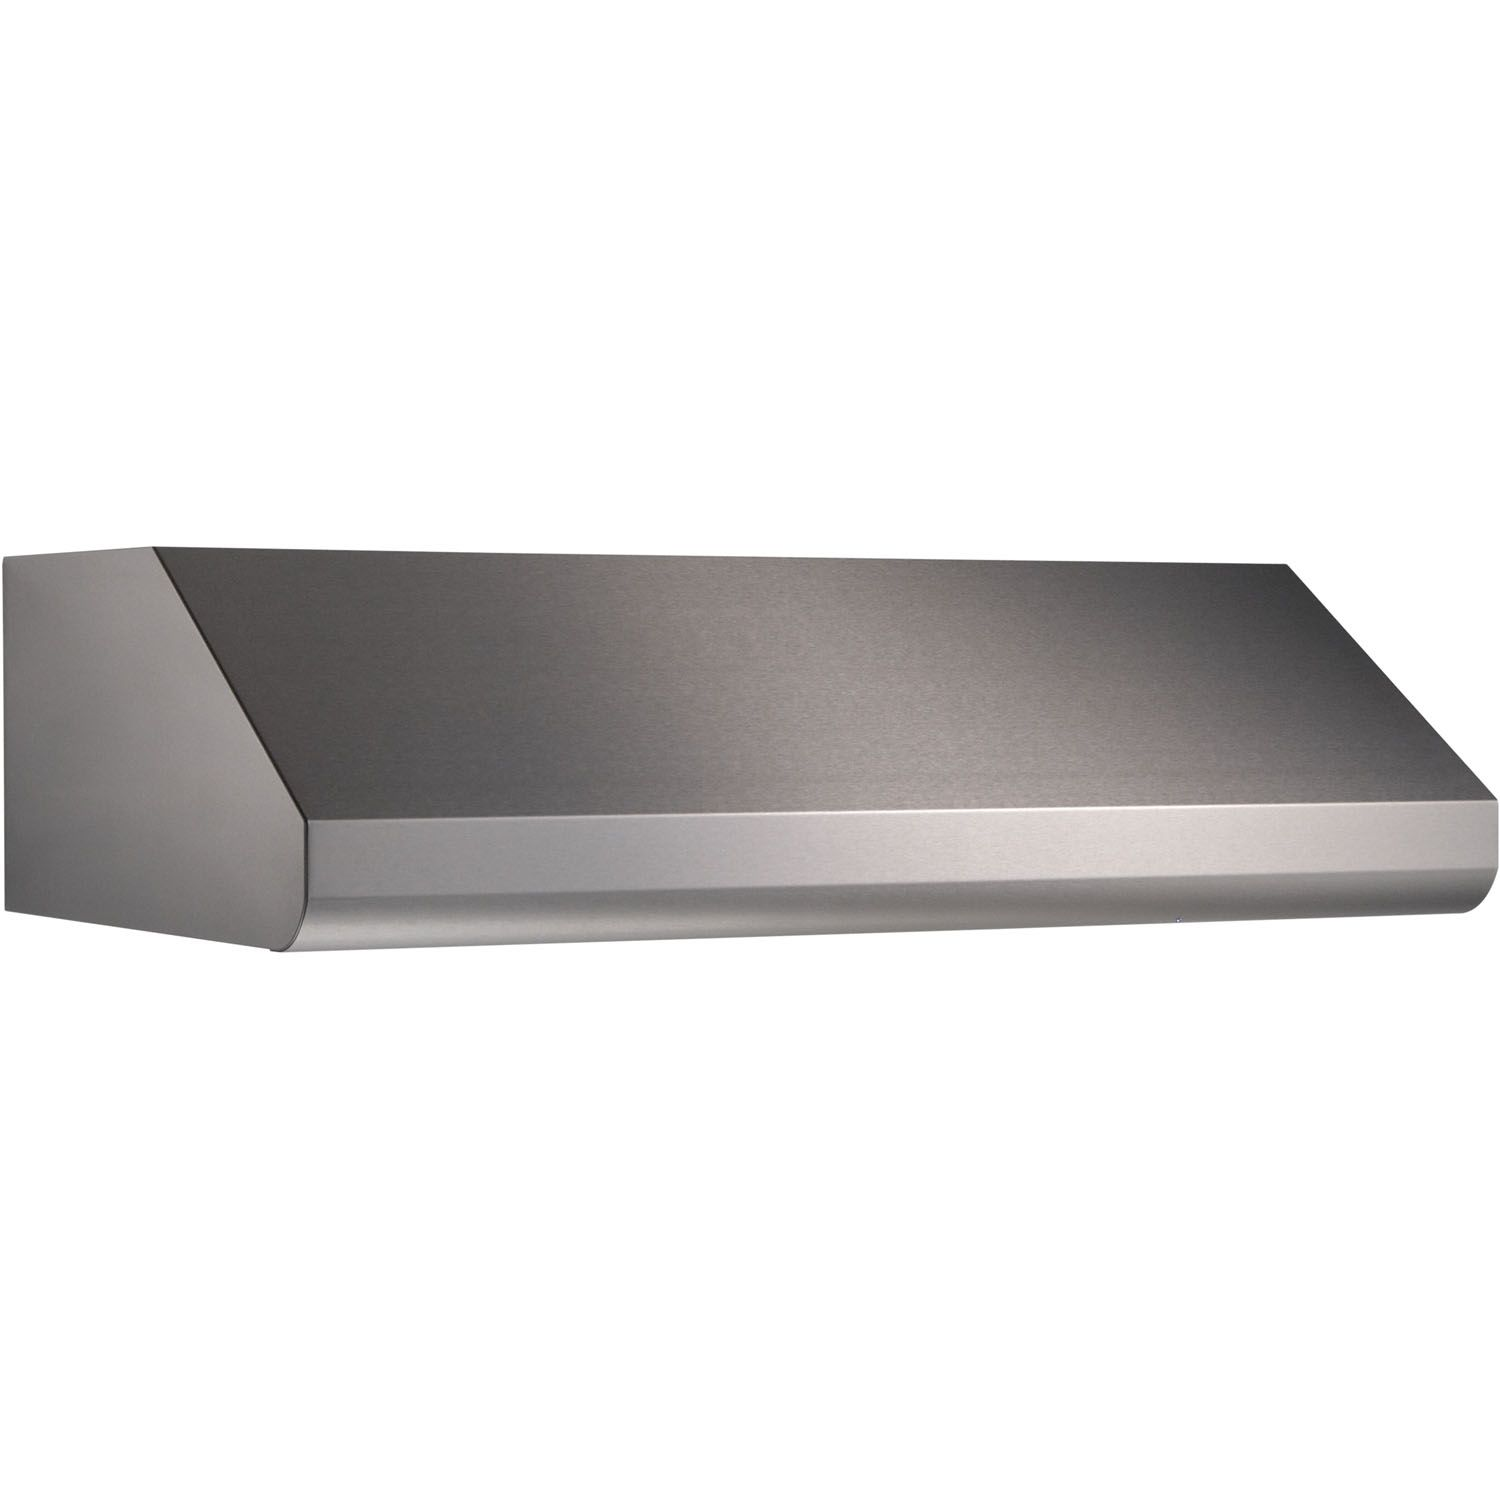 "<p><strong><em>$685, <a href=""http://www.sears.com/broan-30inch-600-cfm-under-cabinet-range-hood/p-02255713000P?sid=IDx01192011x000001&gclid=CJa7k5HLuMkCFYr2Hwod8YIFiQ "" target=""_blank"">sears.com</a></em></strong></p><p><strong>Best for Adapting <br></strong><br>Sweat-drenched clothes due to a blazing-hot kitchen? Don't worry — keep cooking. This range hood's unique heat sentry cools you off by automatically adjusting the blower speed upon detecting dangerously high temperatures.</p><p><strong>More: </strong><a href=""http://www.bestproducts.com/appliances/small/g382/best-programmable-slow-cookers/?visibilityoverride"" target=""_blank"">Cook While Running Errands With These Slow Cookers</a><br></p>"